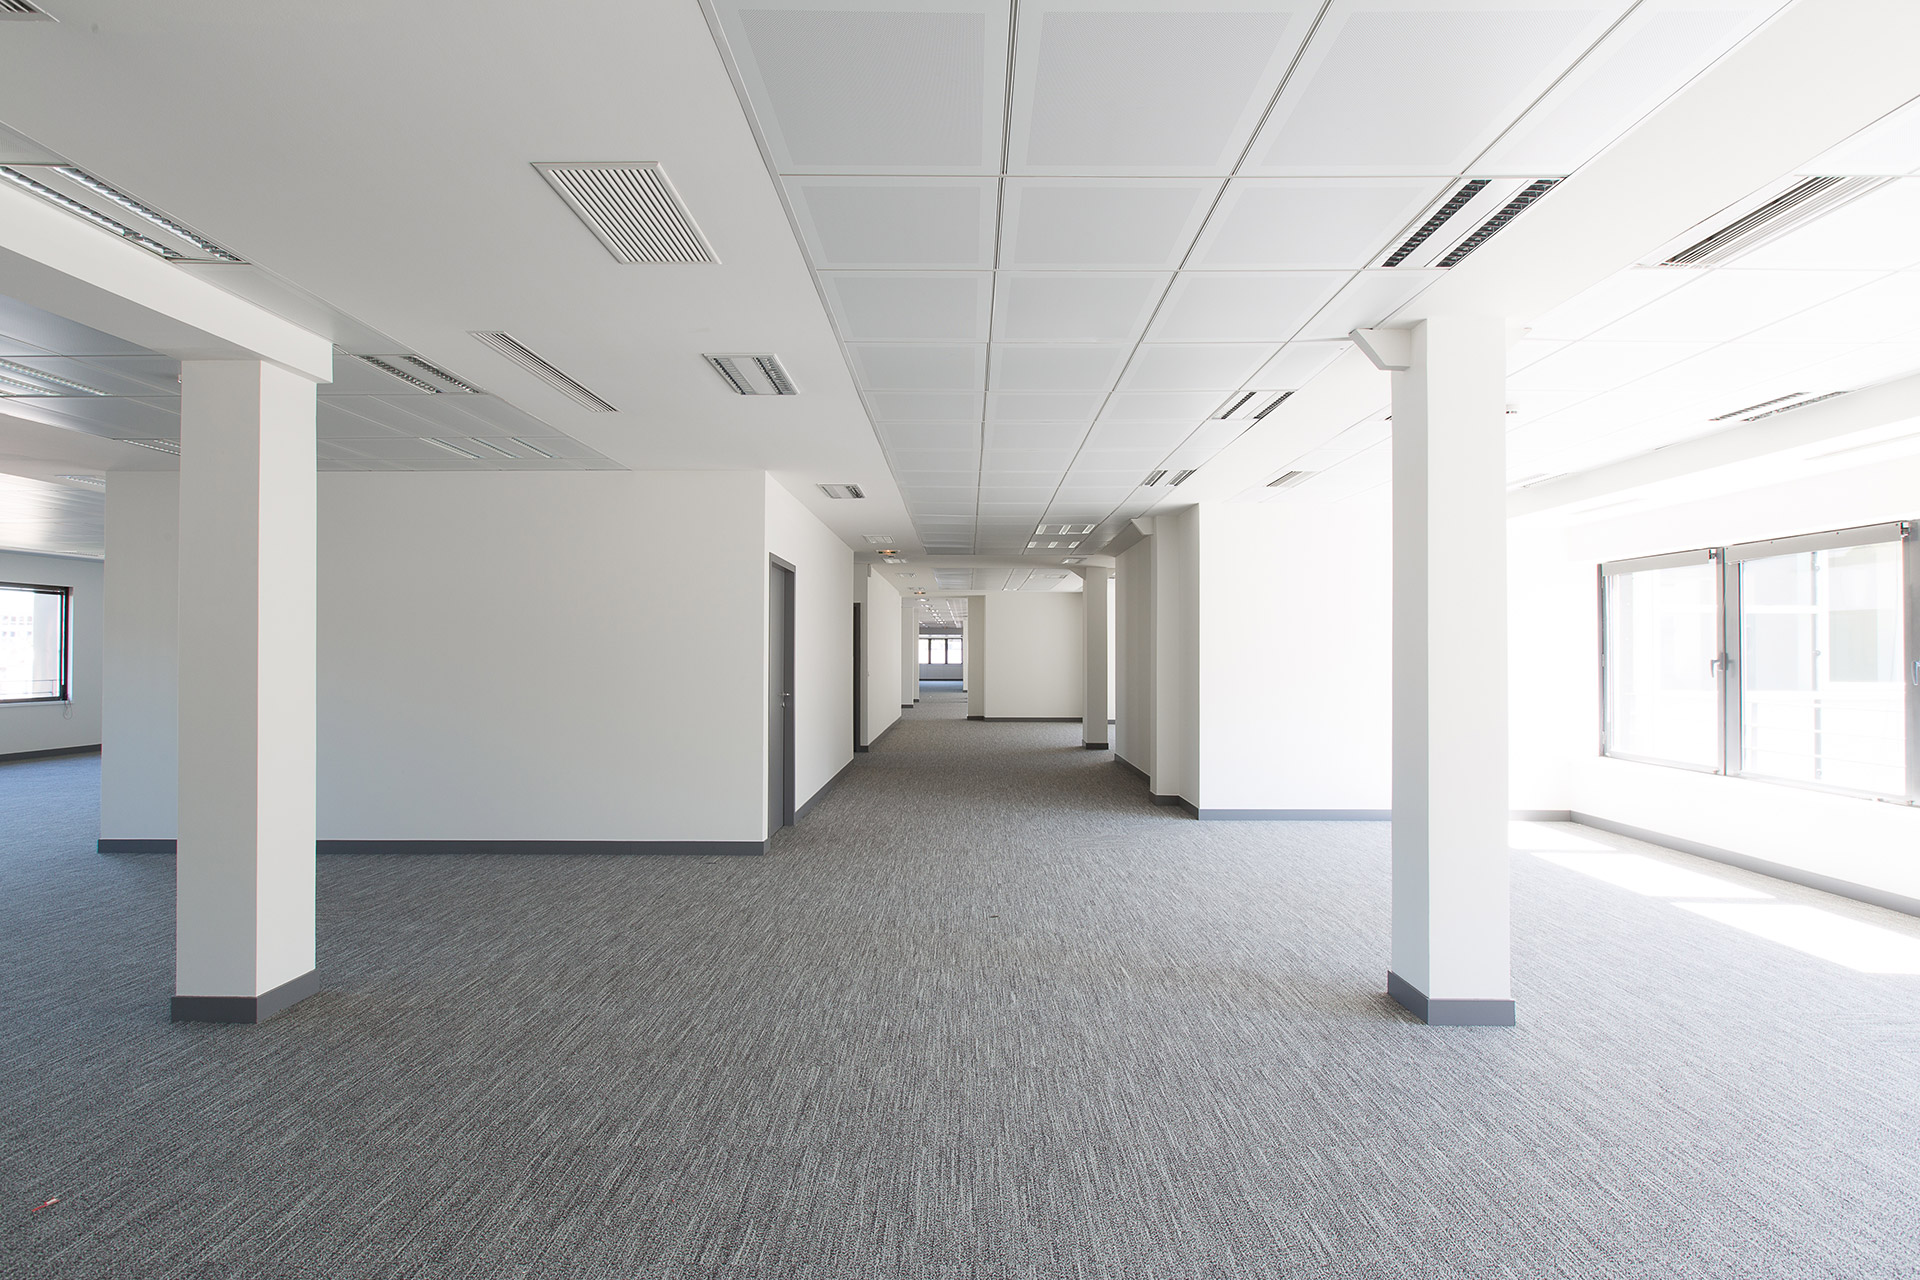 large office space. Design And Delivery Of A Very Large Office Space - RREEF France